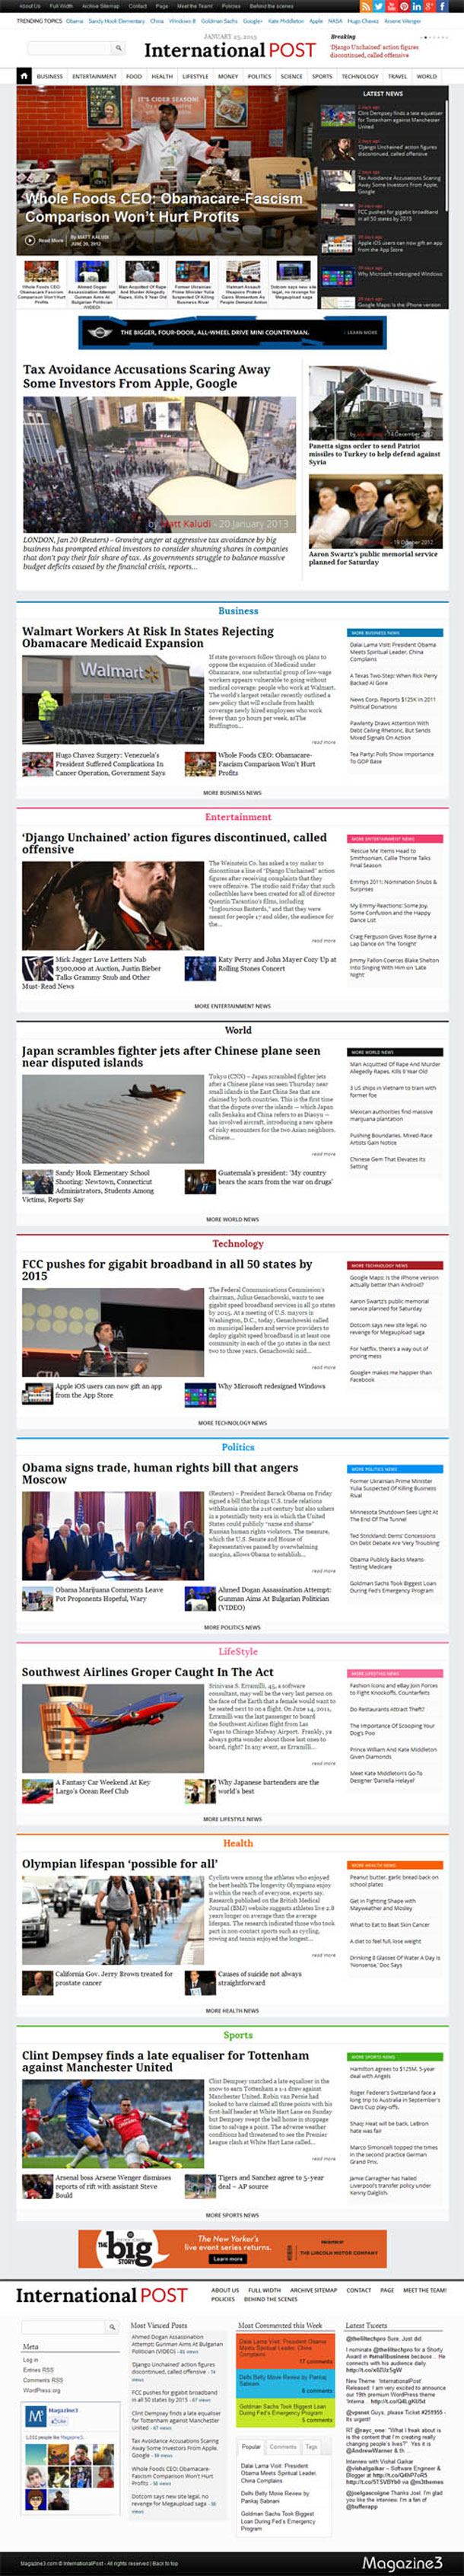 International Post News Theme Image